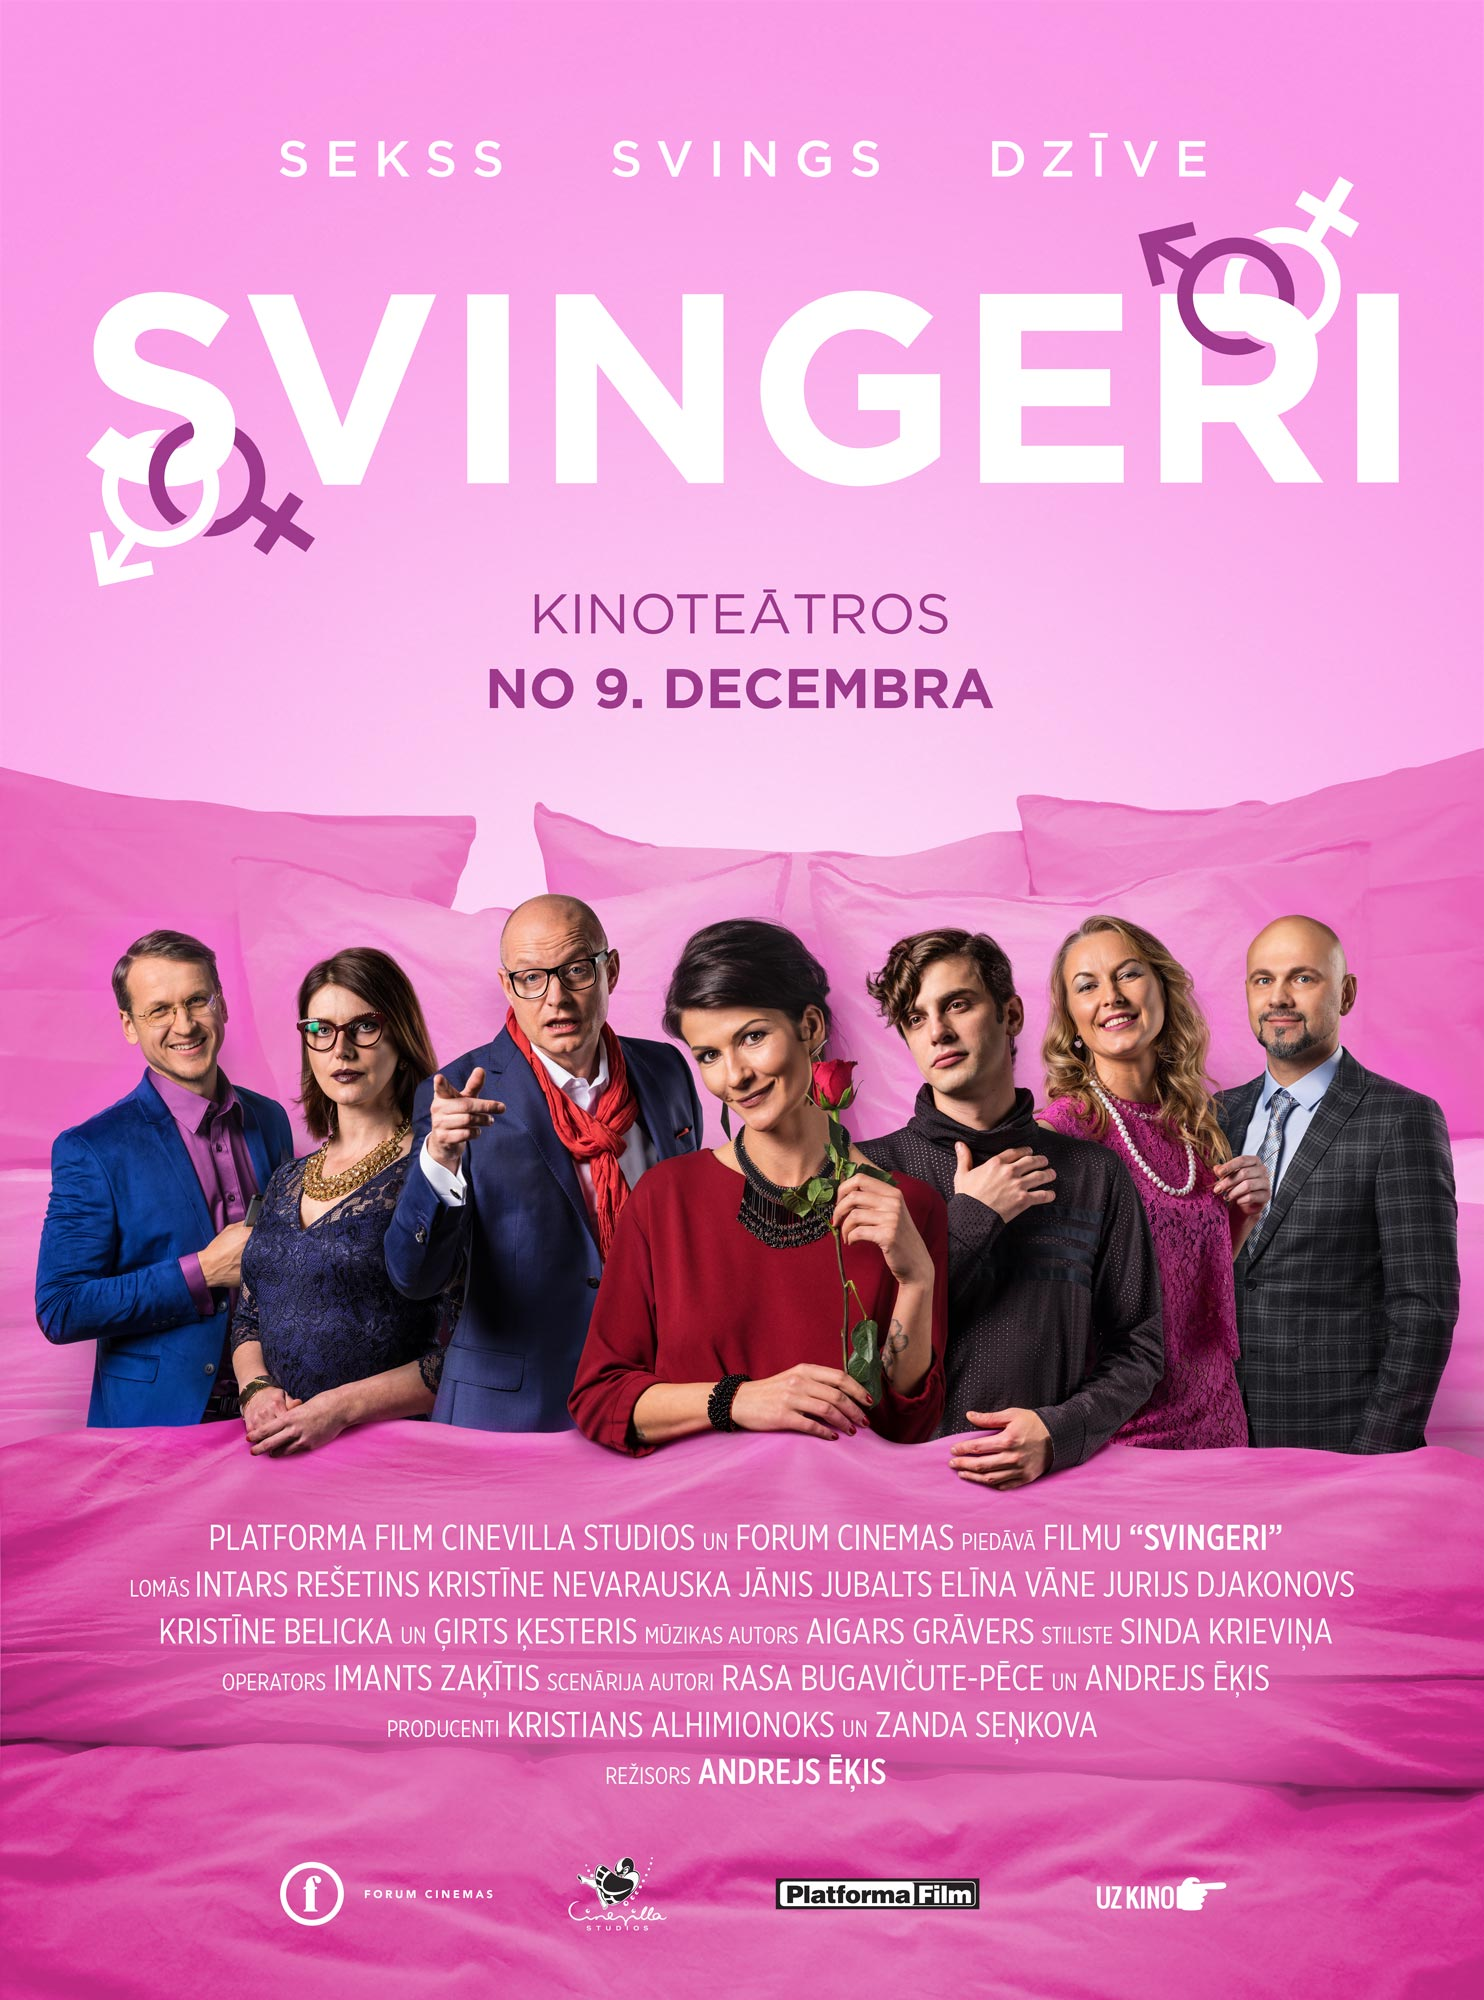 Movie of real swingers